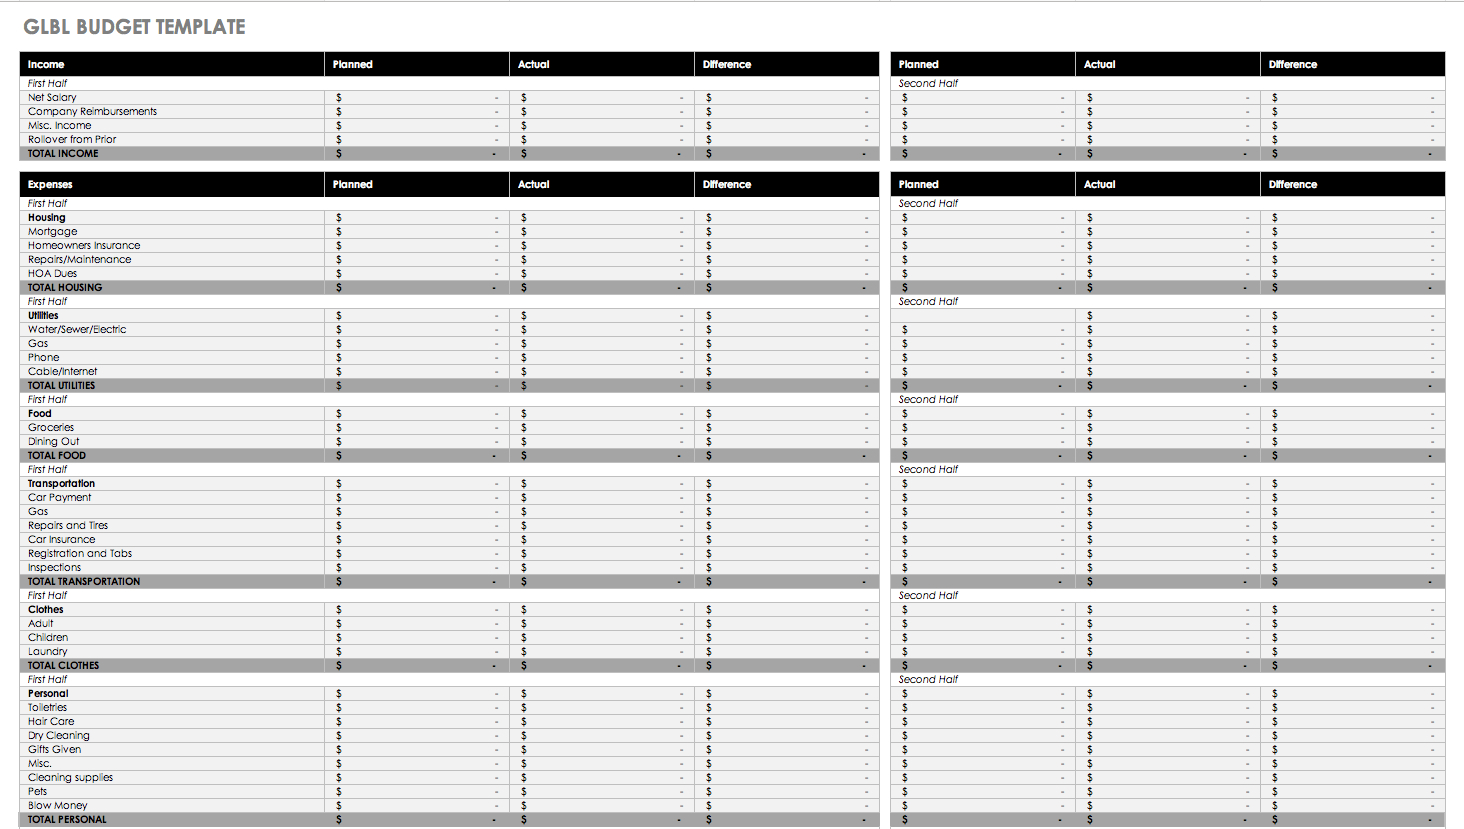 Personal Income And Expenses Spreadsheet With Free Budget Templates In Excel For Any Use